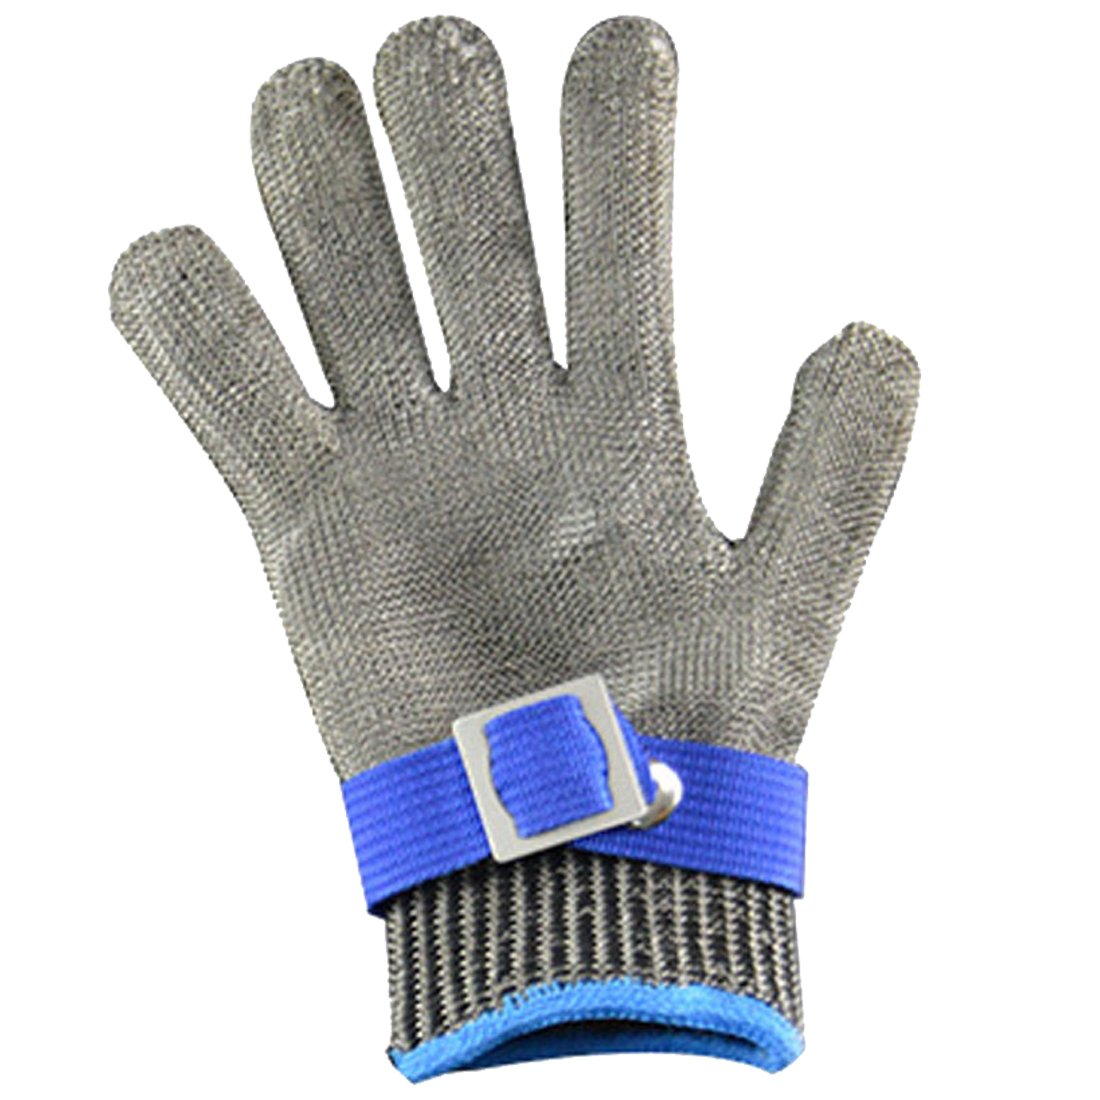 Cut Resistant Glove Stainless Steel Metal Mesh Cut Proof Protection L